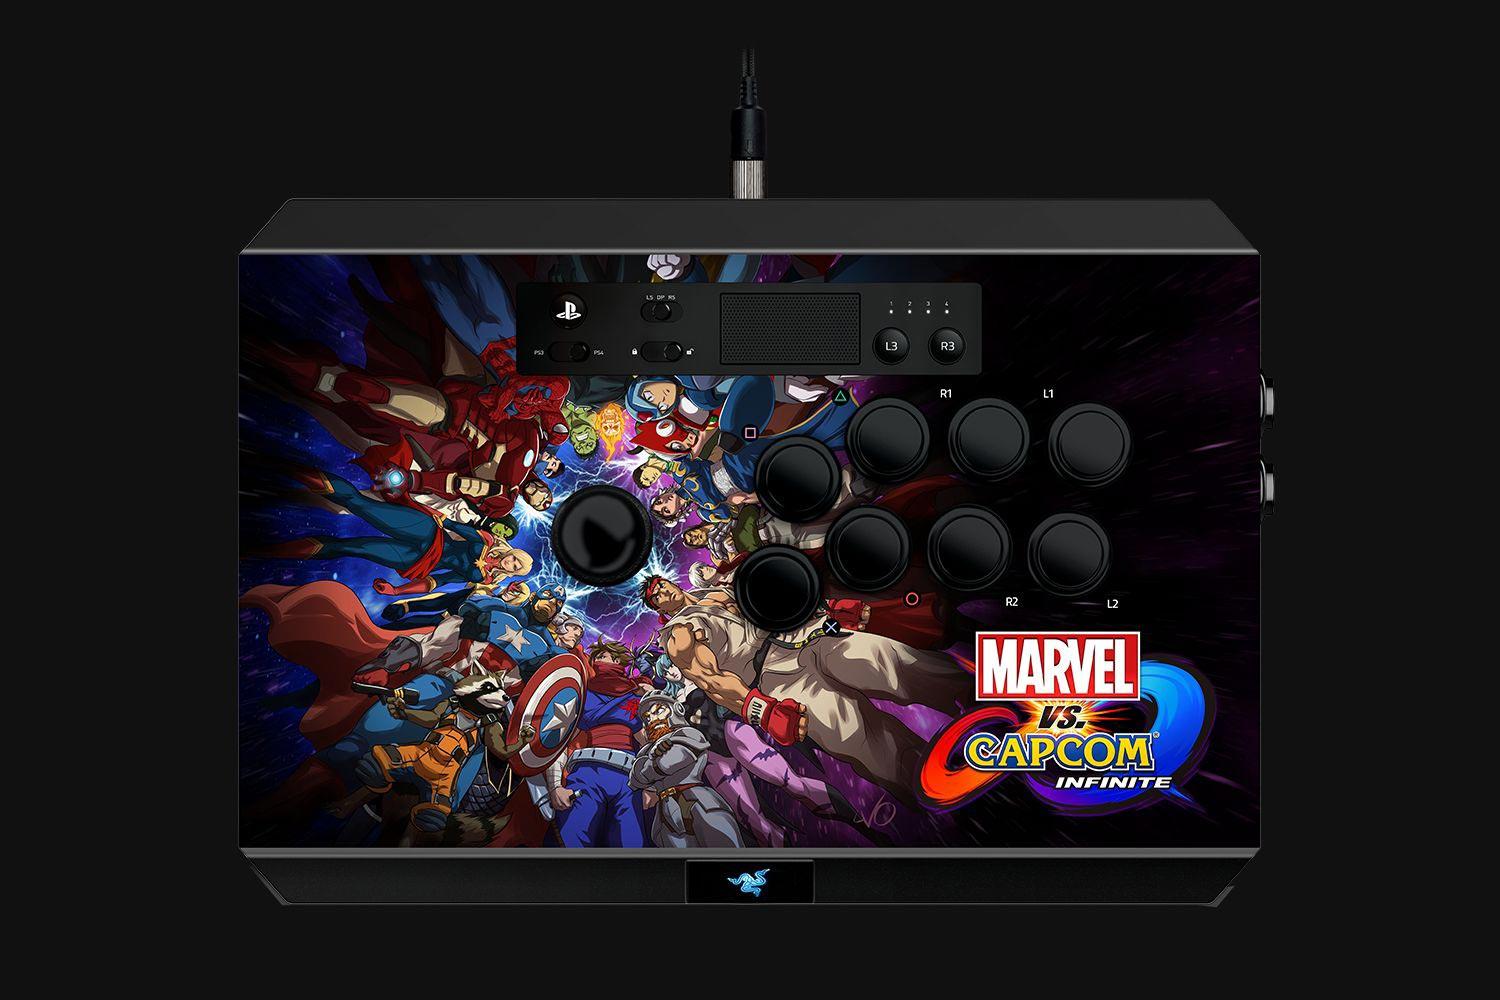 Marvel vs. Capcom: Infinite Razer Panthera 1 out of 4 image gallery